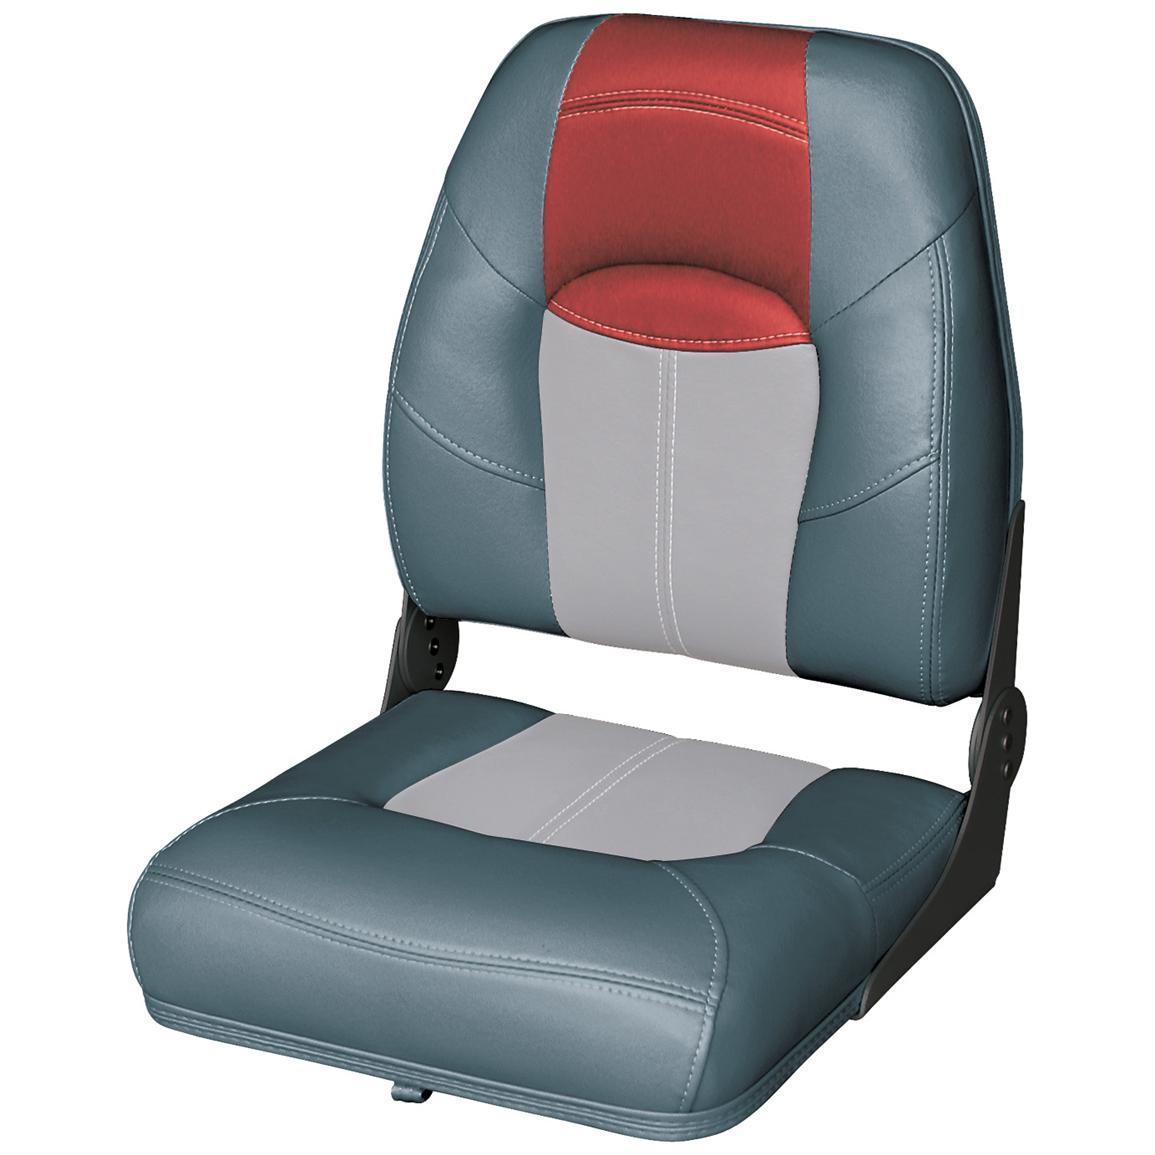 Wise® Blast-Off™ Series High Back Folding Boat Seat, Charcoal / Grey / Red